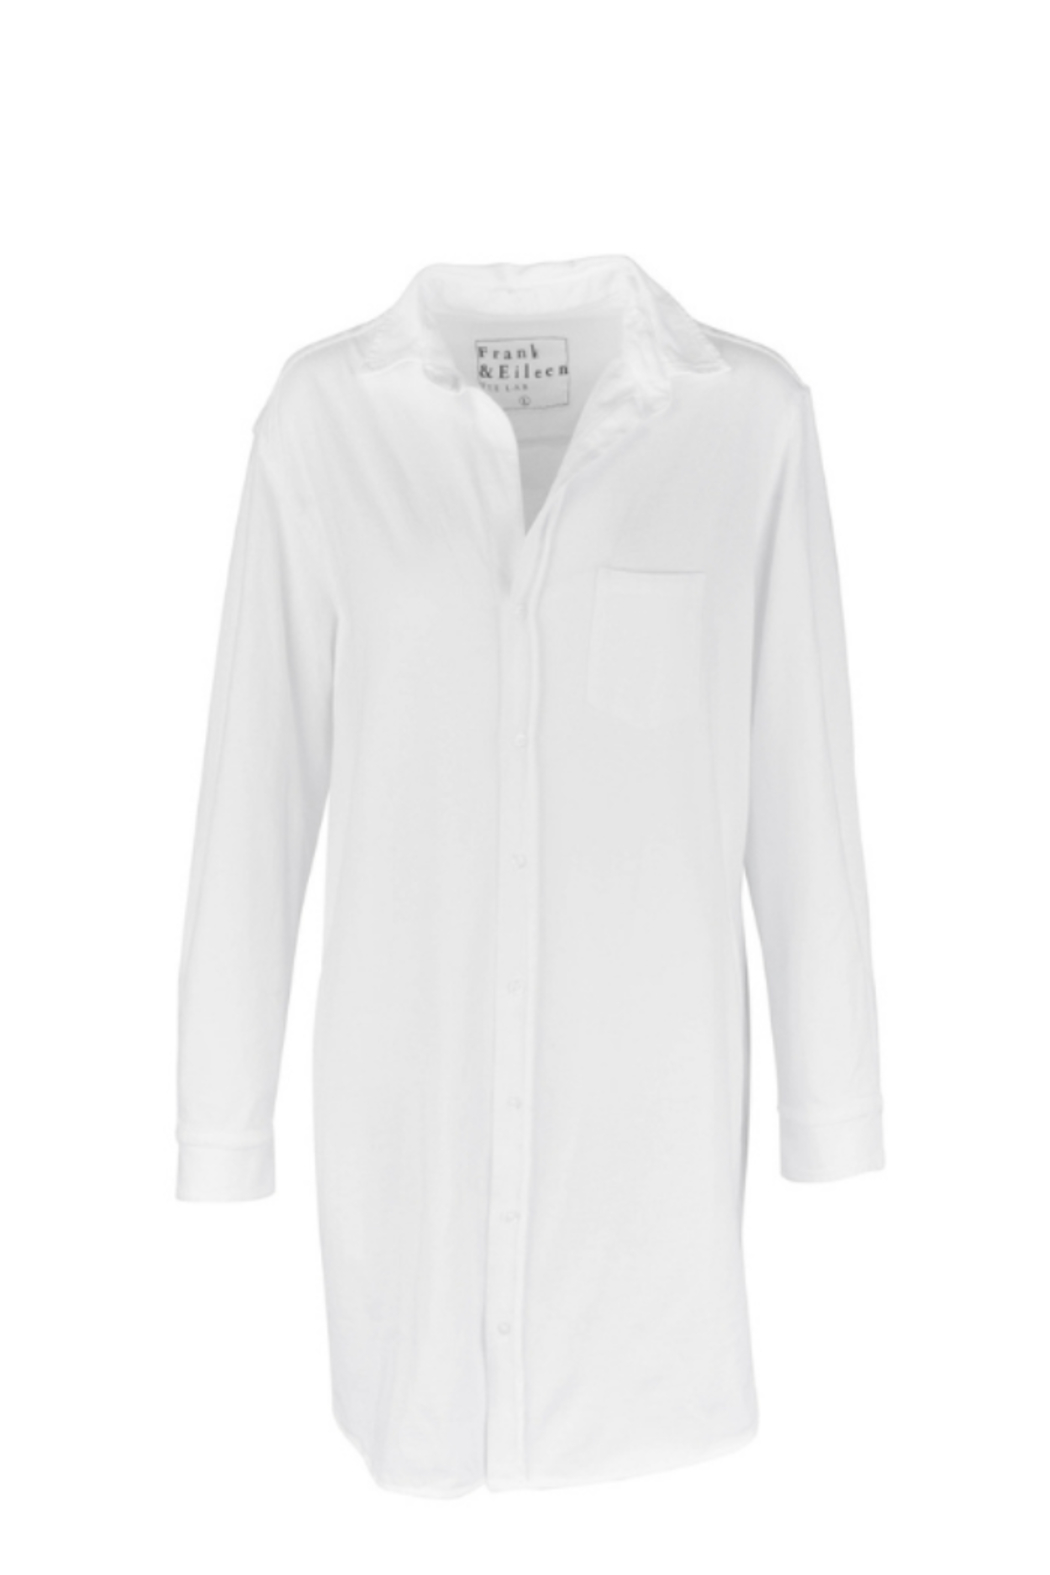 Frank & Eileen Mary Relaxed Button Down Shirt Dress - Main Image